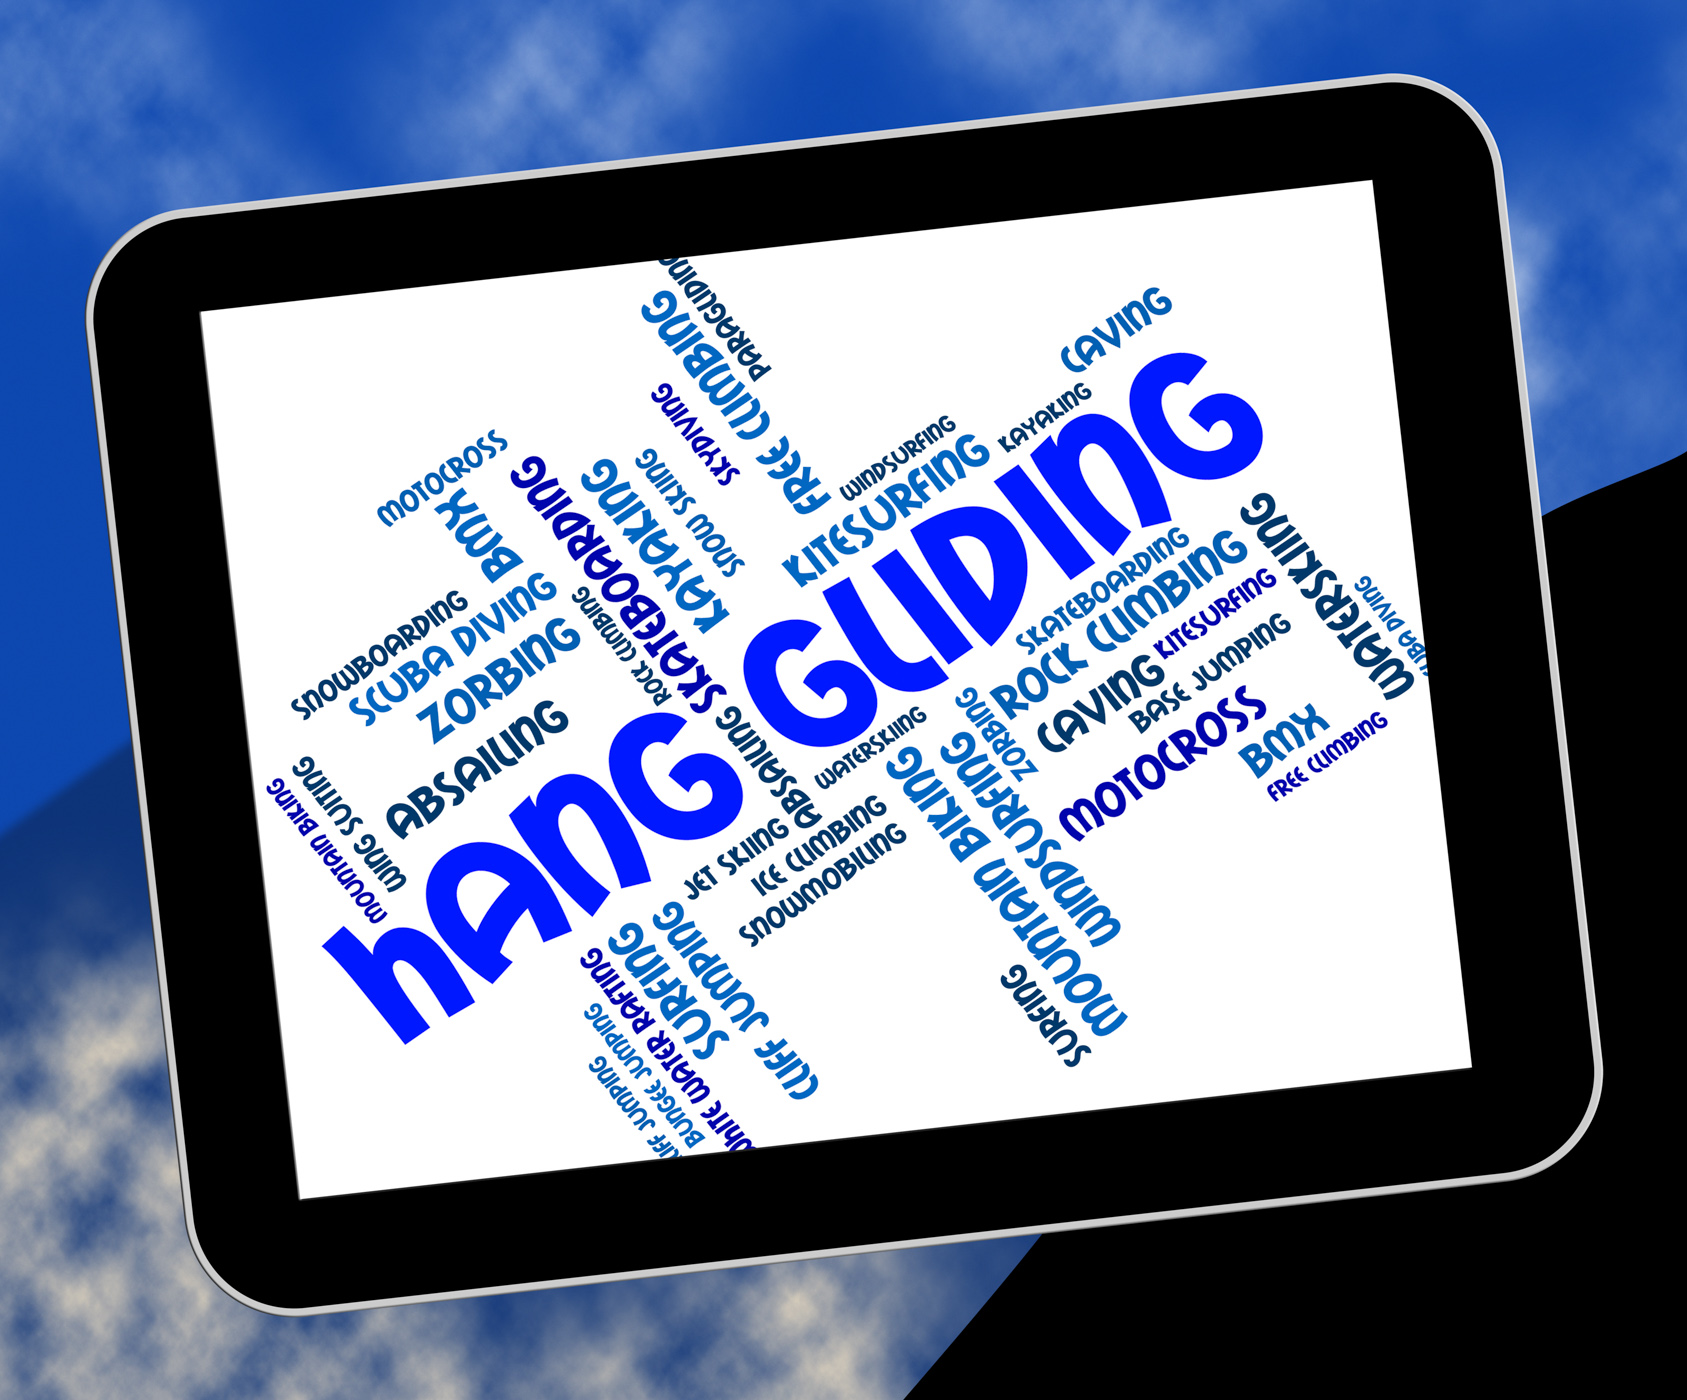 Hang gliding means hanggliders words and glide photo